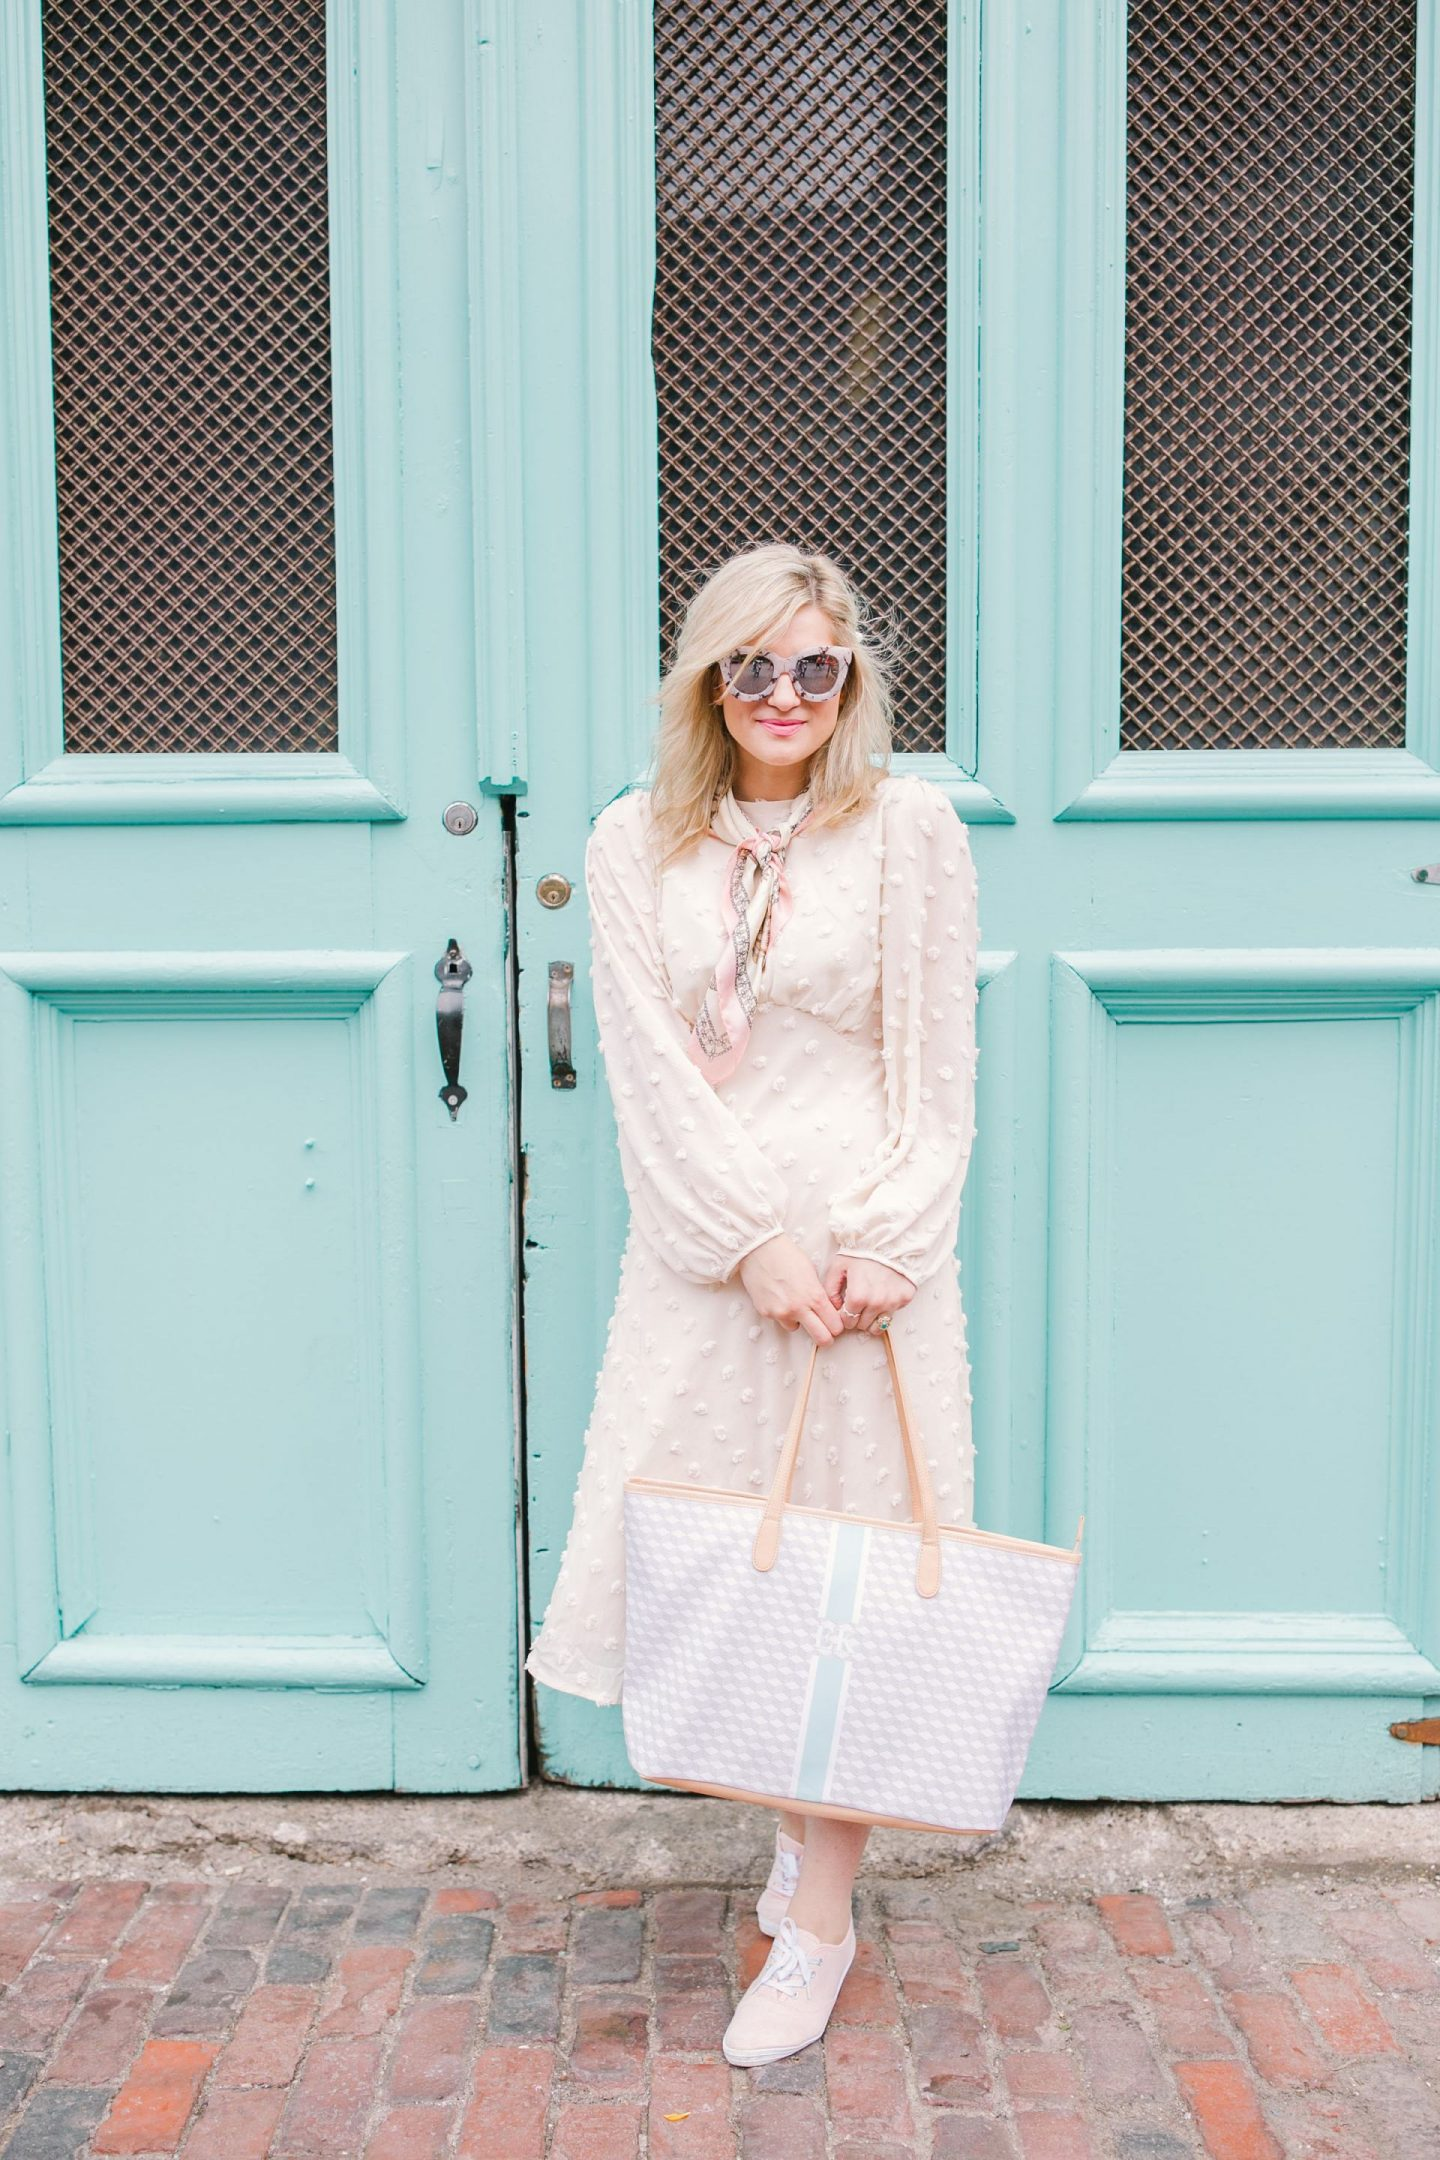 5 Reasons Why You Need a Tote Bag